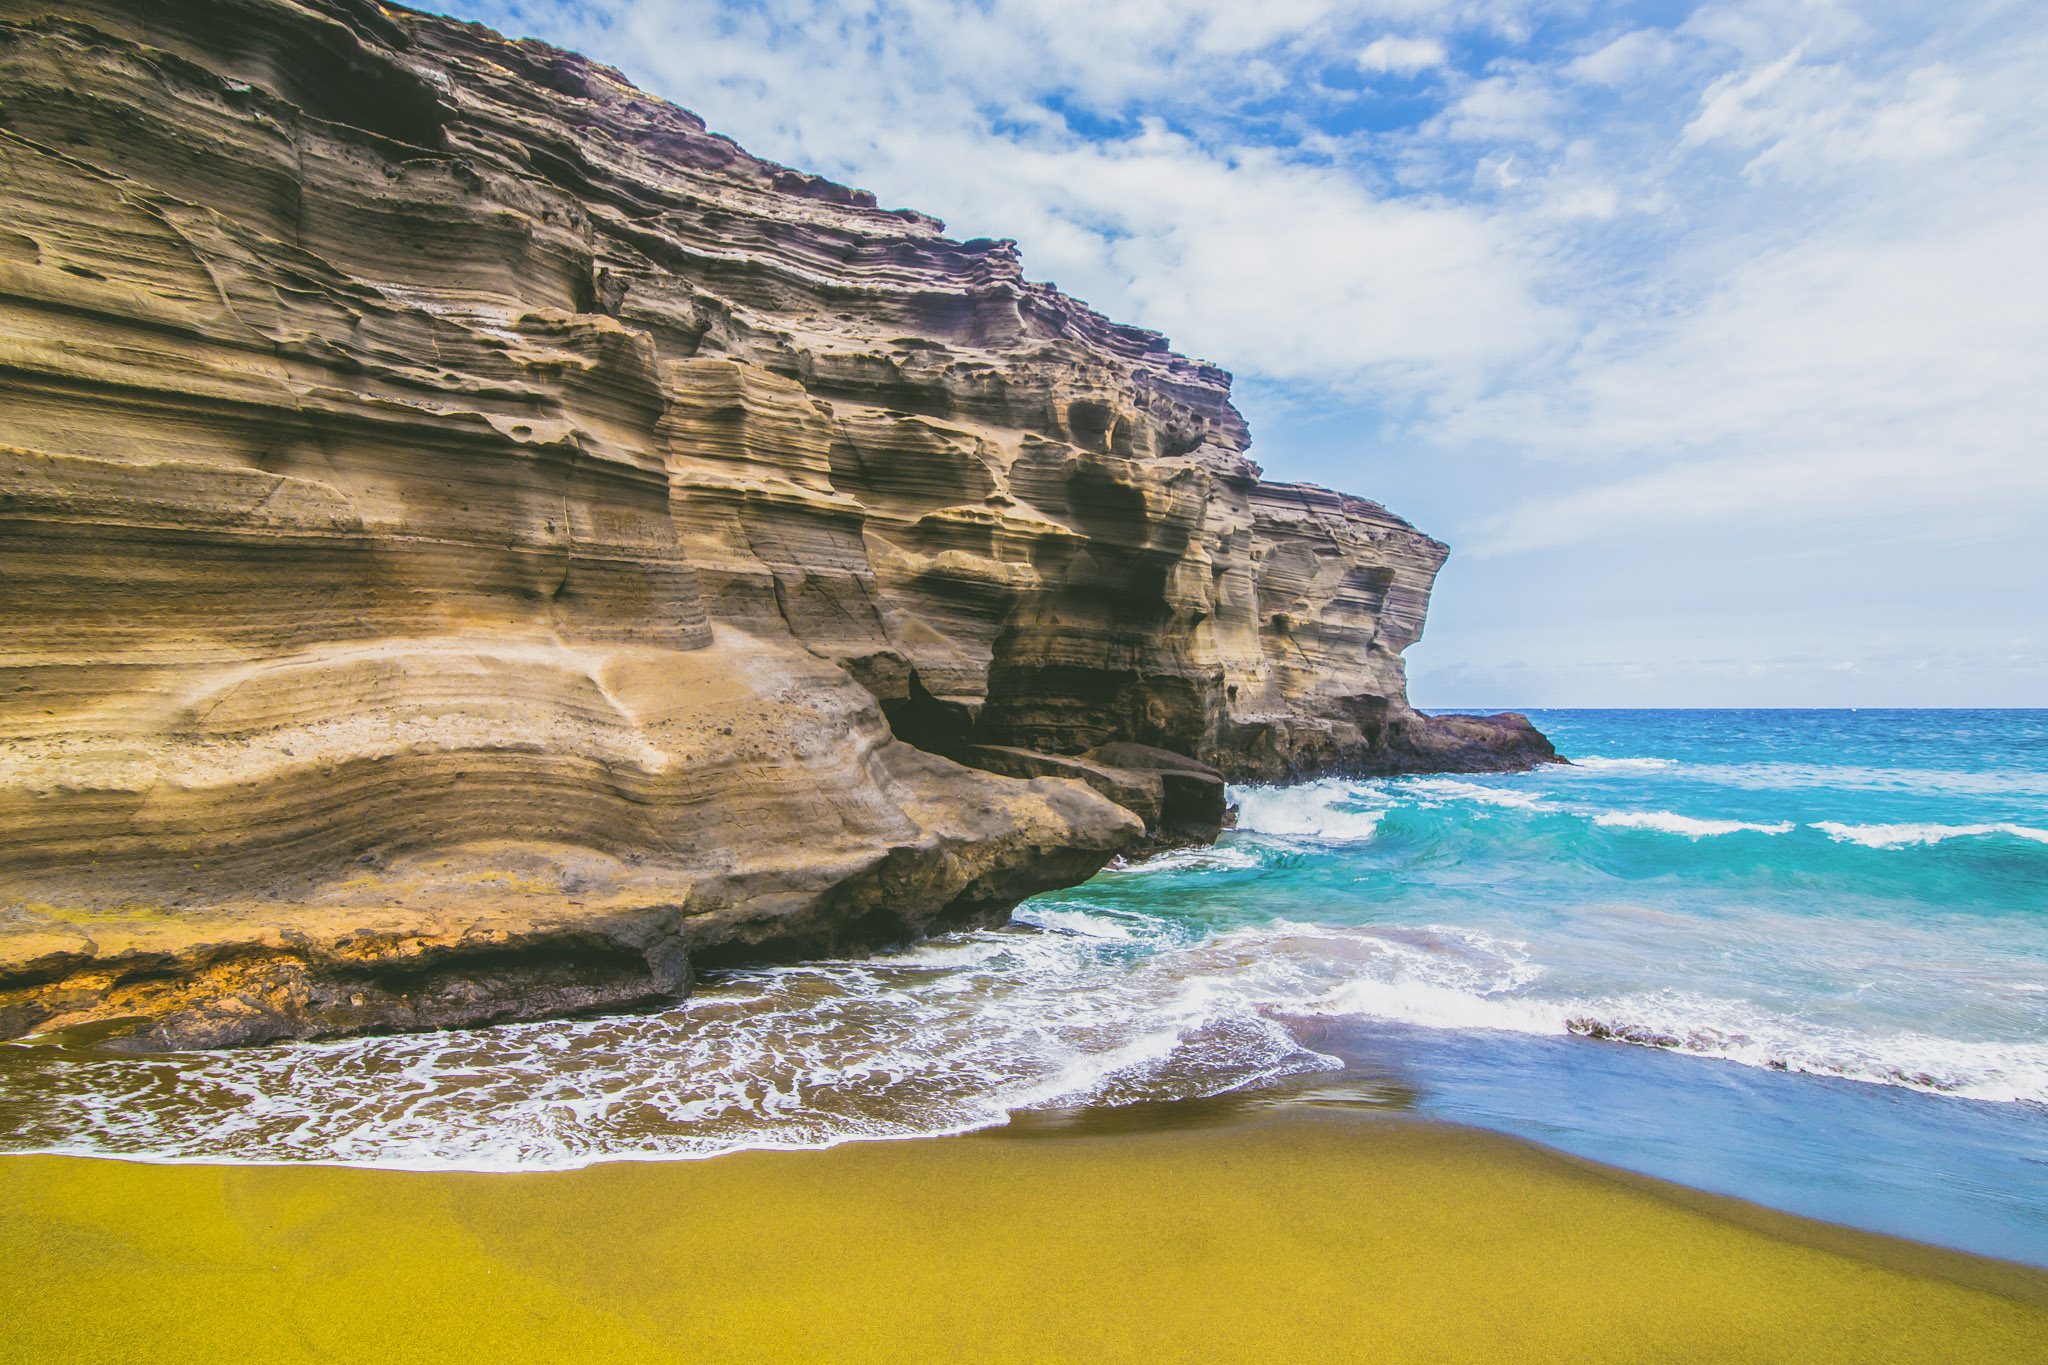 Green Sand Beach  // 10 Things You Have to Do on the Big Island of Hawaii // www.readysetjetset.net #readysetjetset #hawaii #bigisland #blogpost #hawaiiguide